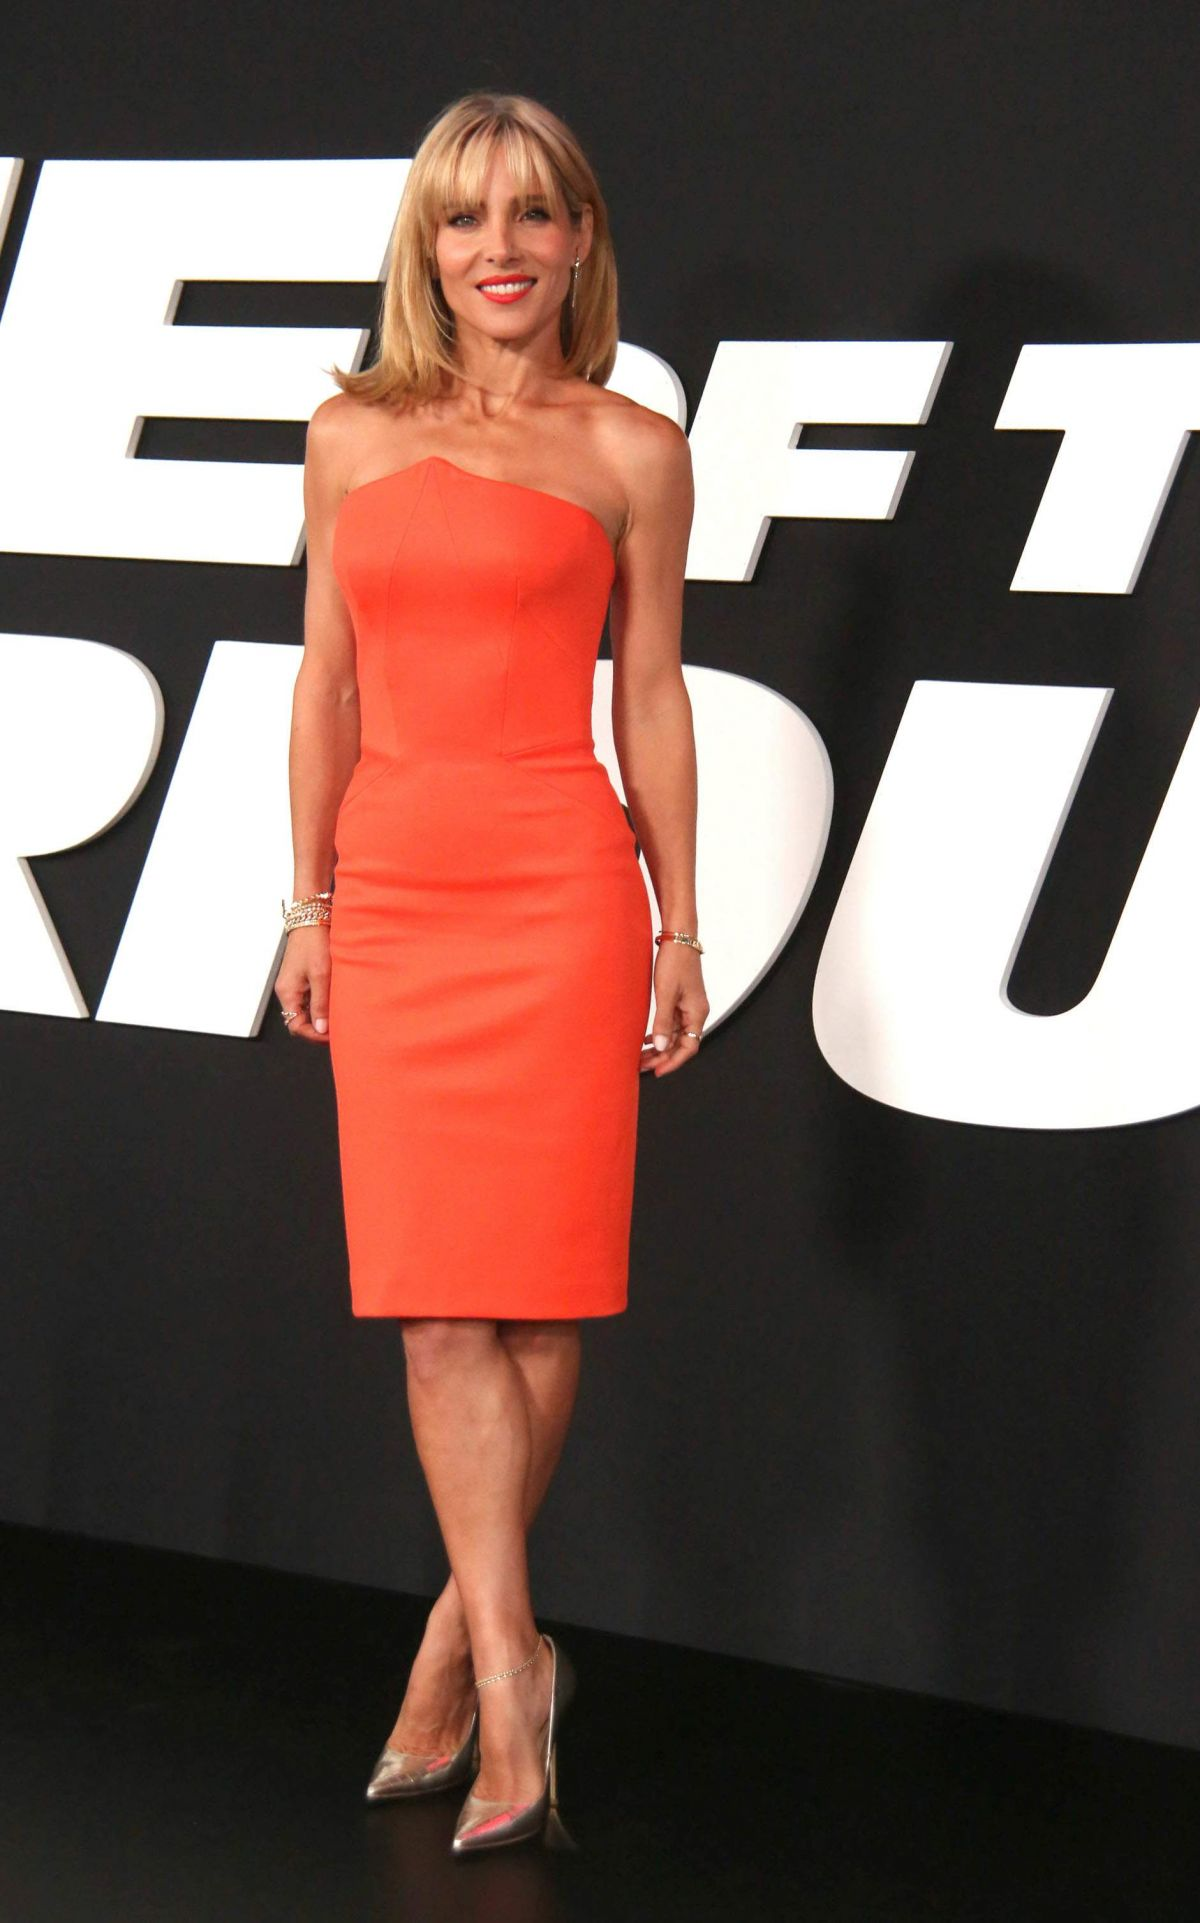 Elsa pataky fate of the furious pemiere in new york new pictures